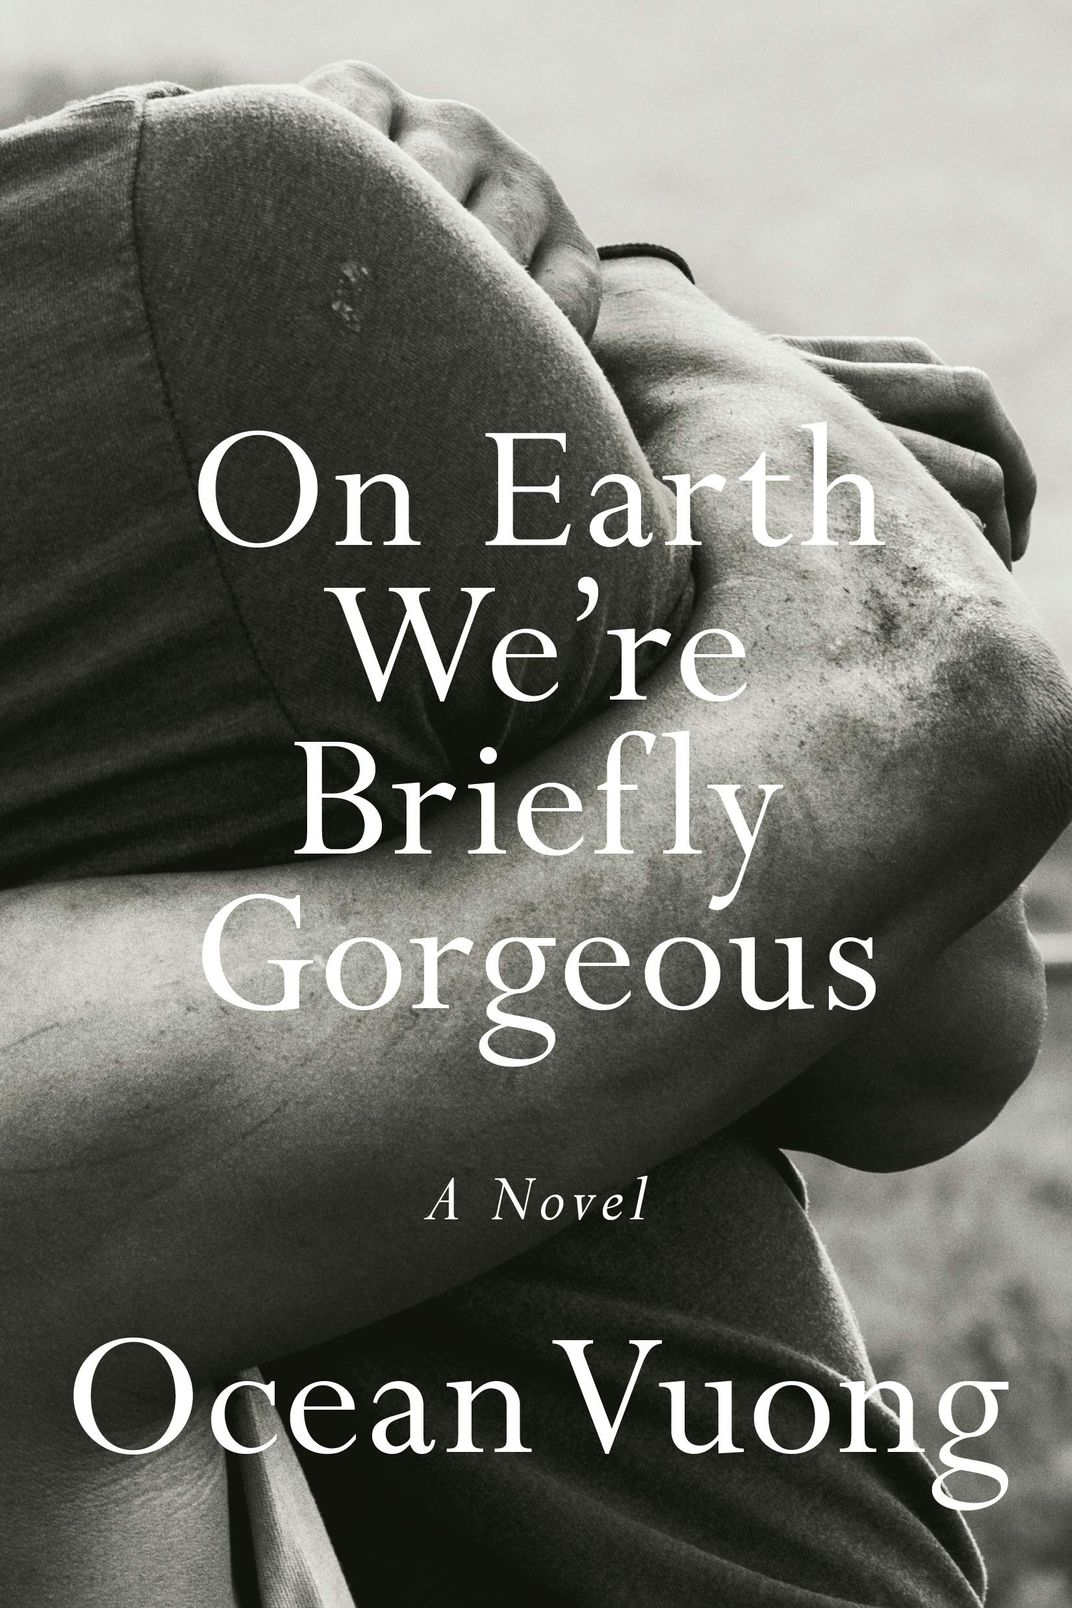 On Earth We're Briefly Gorgeous, by Ocean Vuong (Penguin, June 16)